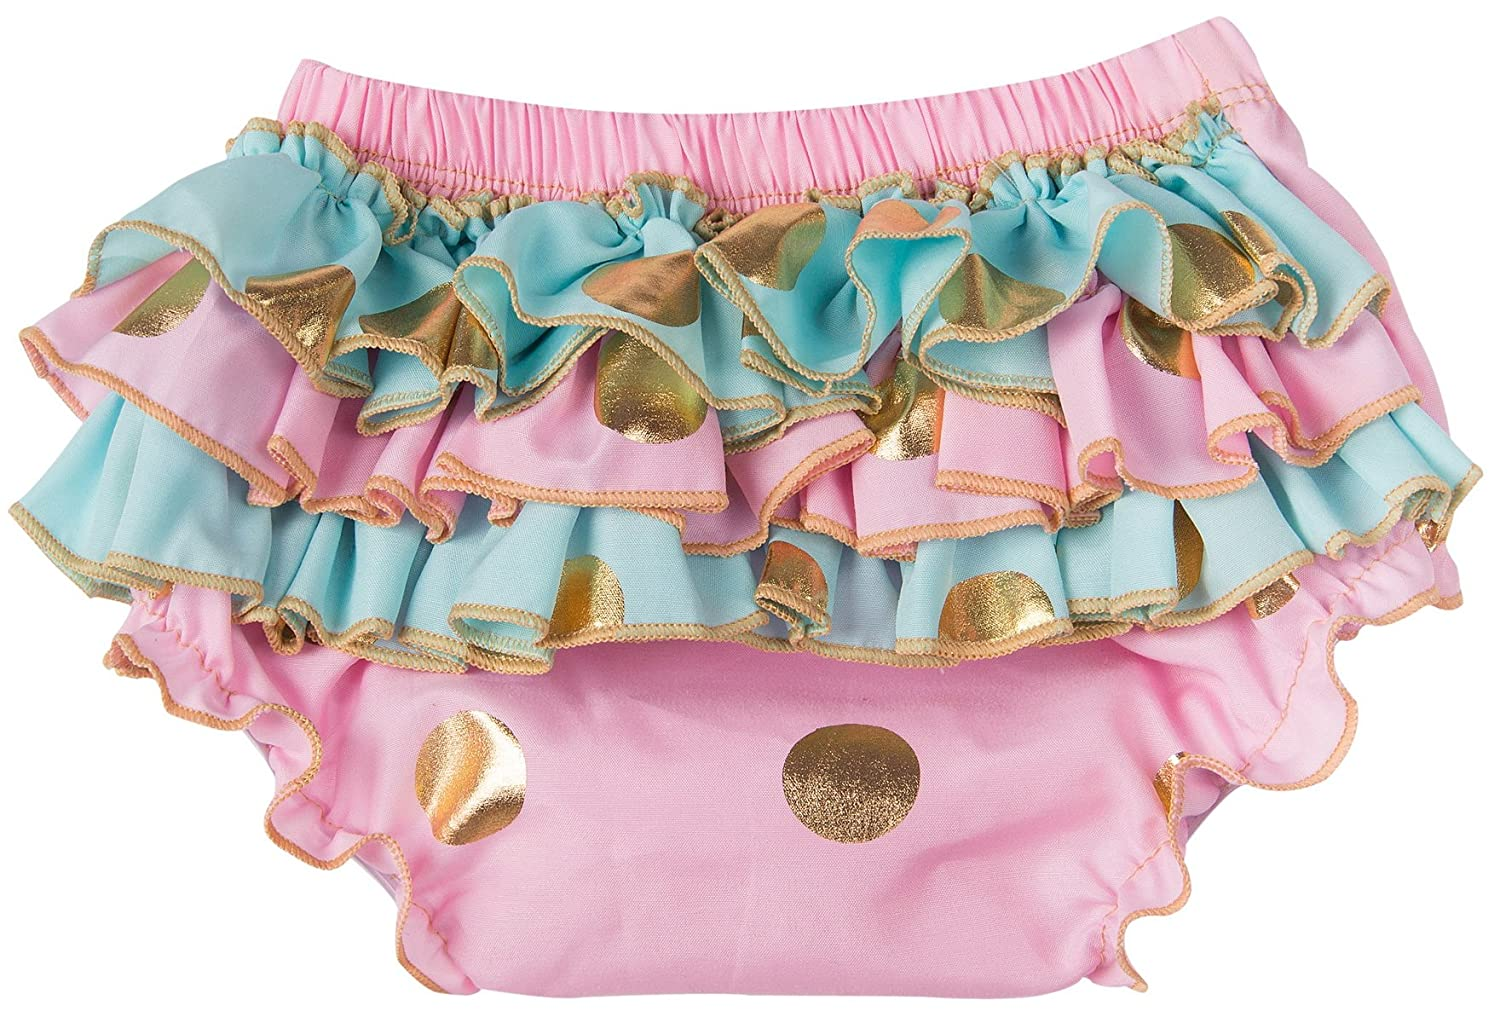 Messy Code Baby Bloomers Infant Ruffle Shorts Girl Underwear Diaper Cover Gold Dot Briefs for Toddler KP-BGPB01